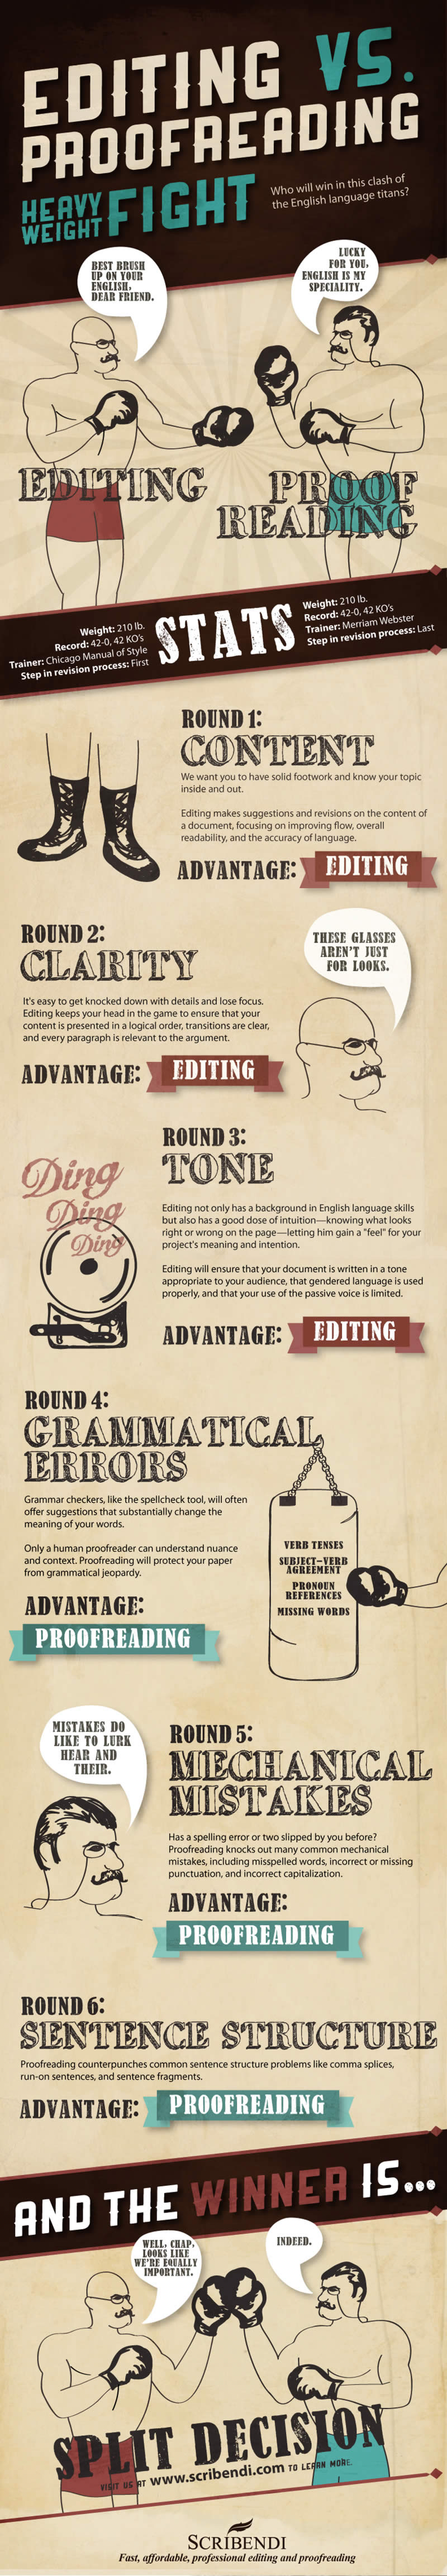 editing-vs-proofreading-guide